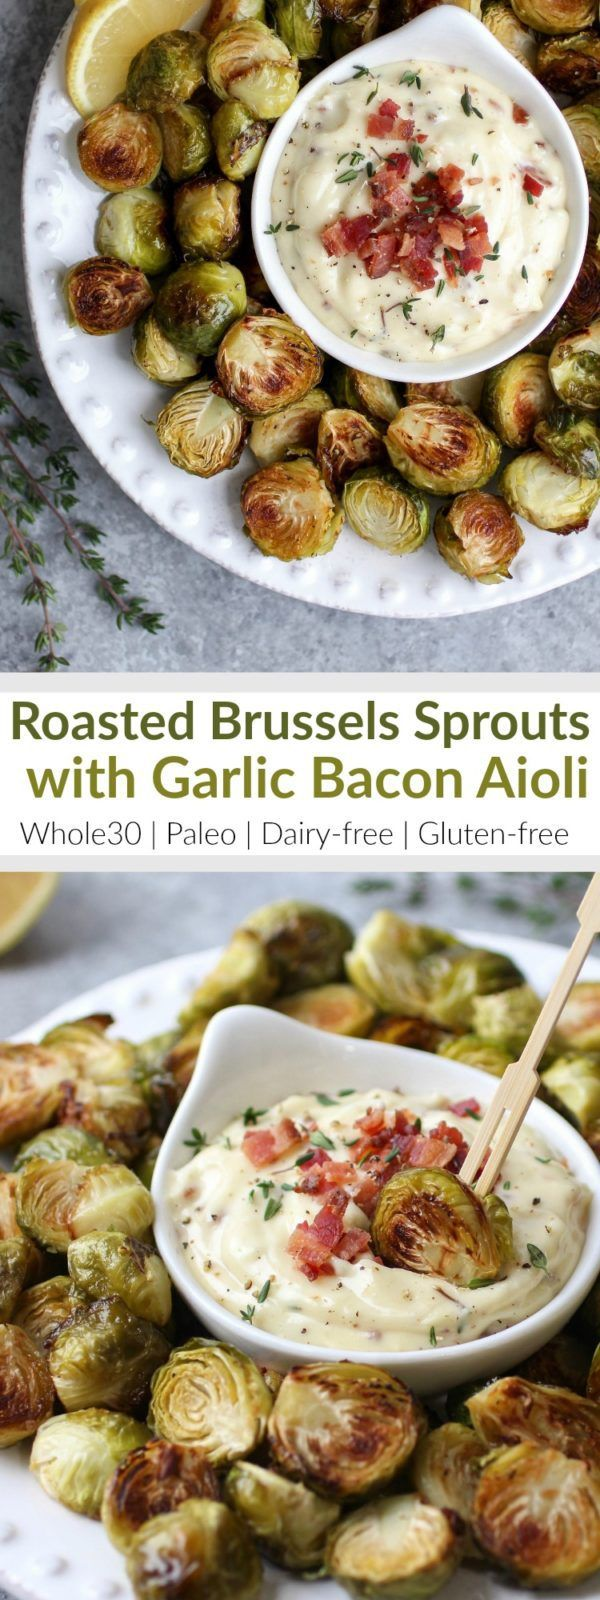 Add these healthy Roasted Brussels Sprouts with Garlic Bacon Aioli to your Holiday party menu or serve them as a delicious Whole30-friendly side-dish | Whole30 | Paleo | Dairy-free | Gluten-free | therealfoodrds.com